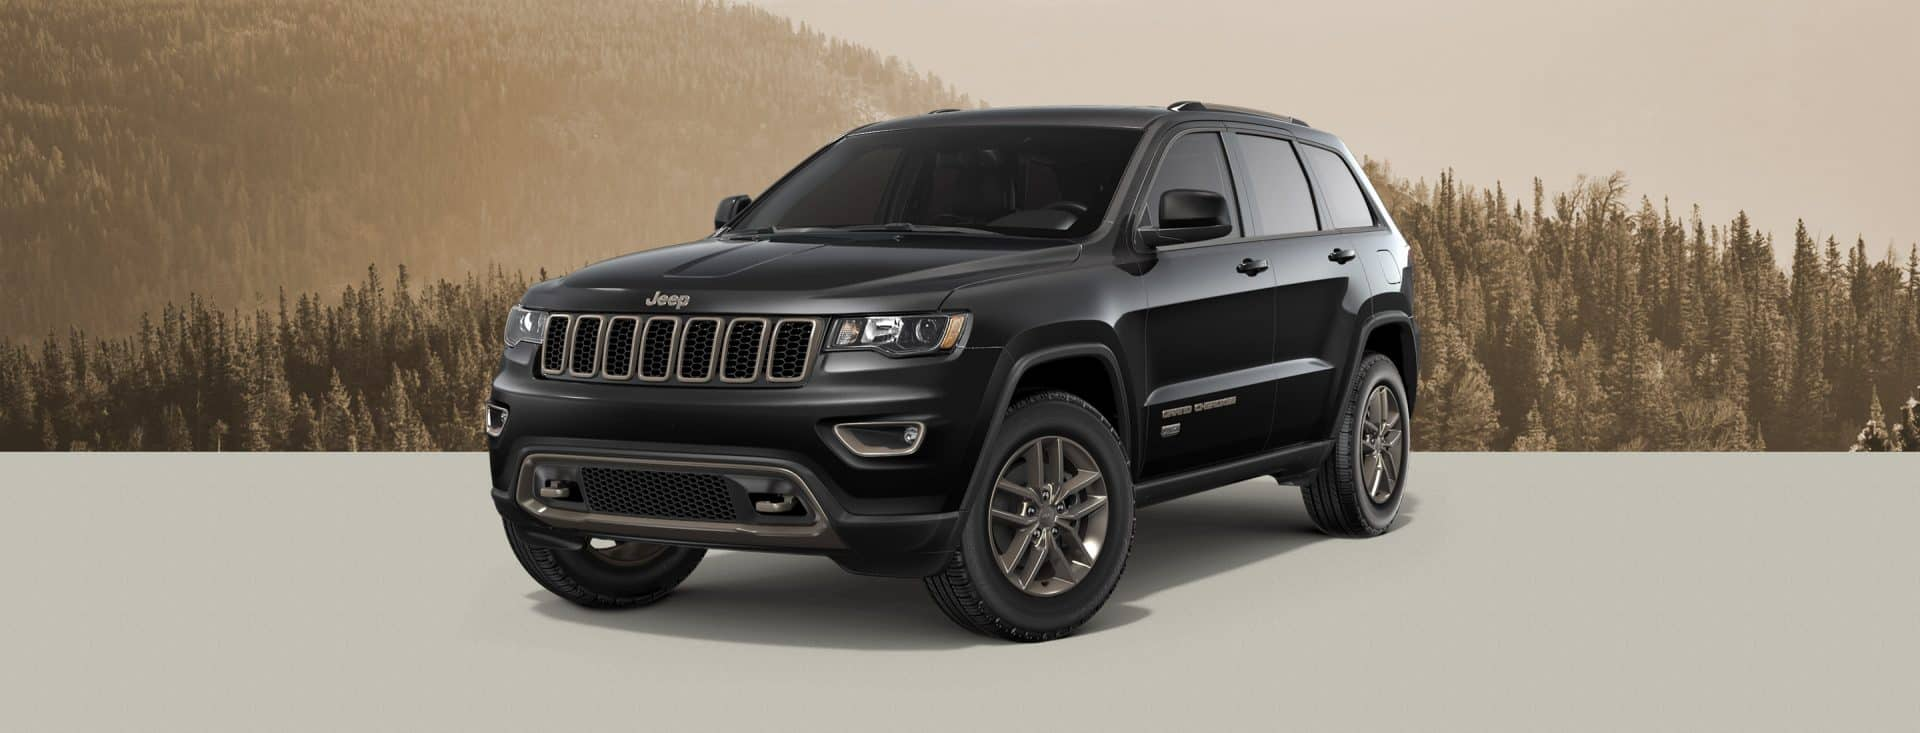 2017 jeep grand cherokee 75th anniversary edition. Black Bedroom Furniture Sets. Home Design Ideas